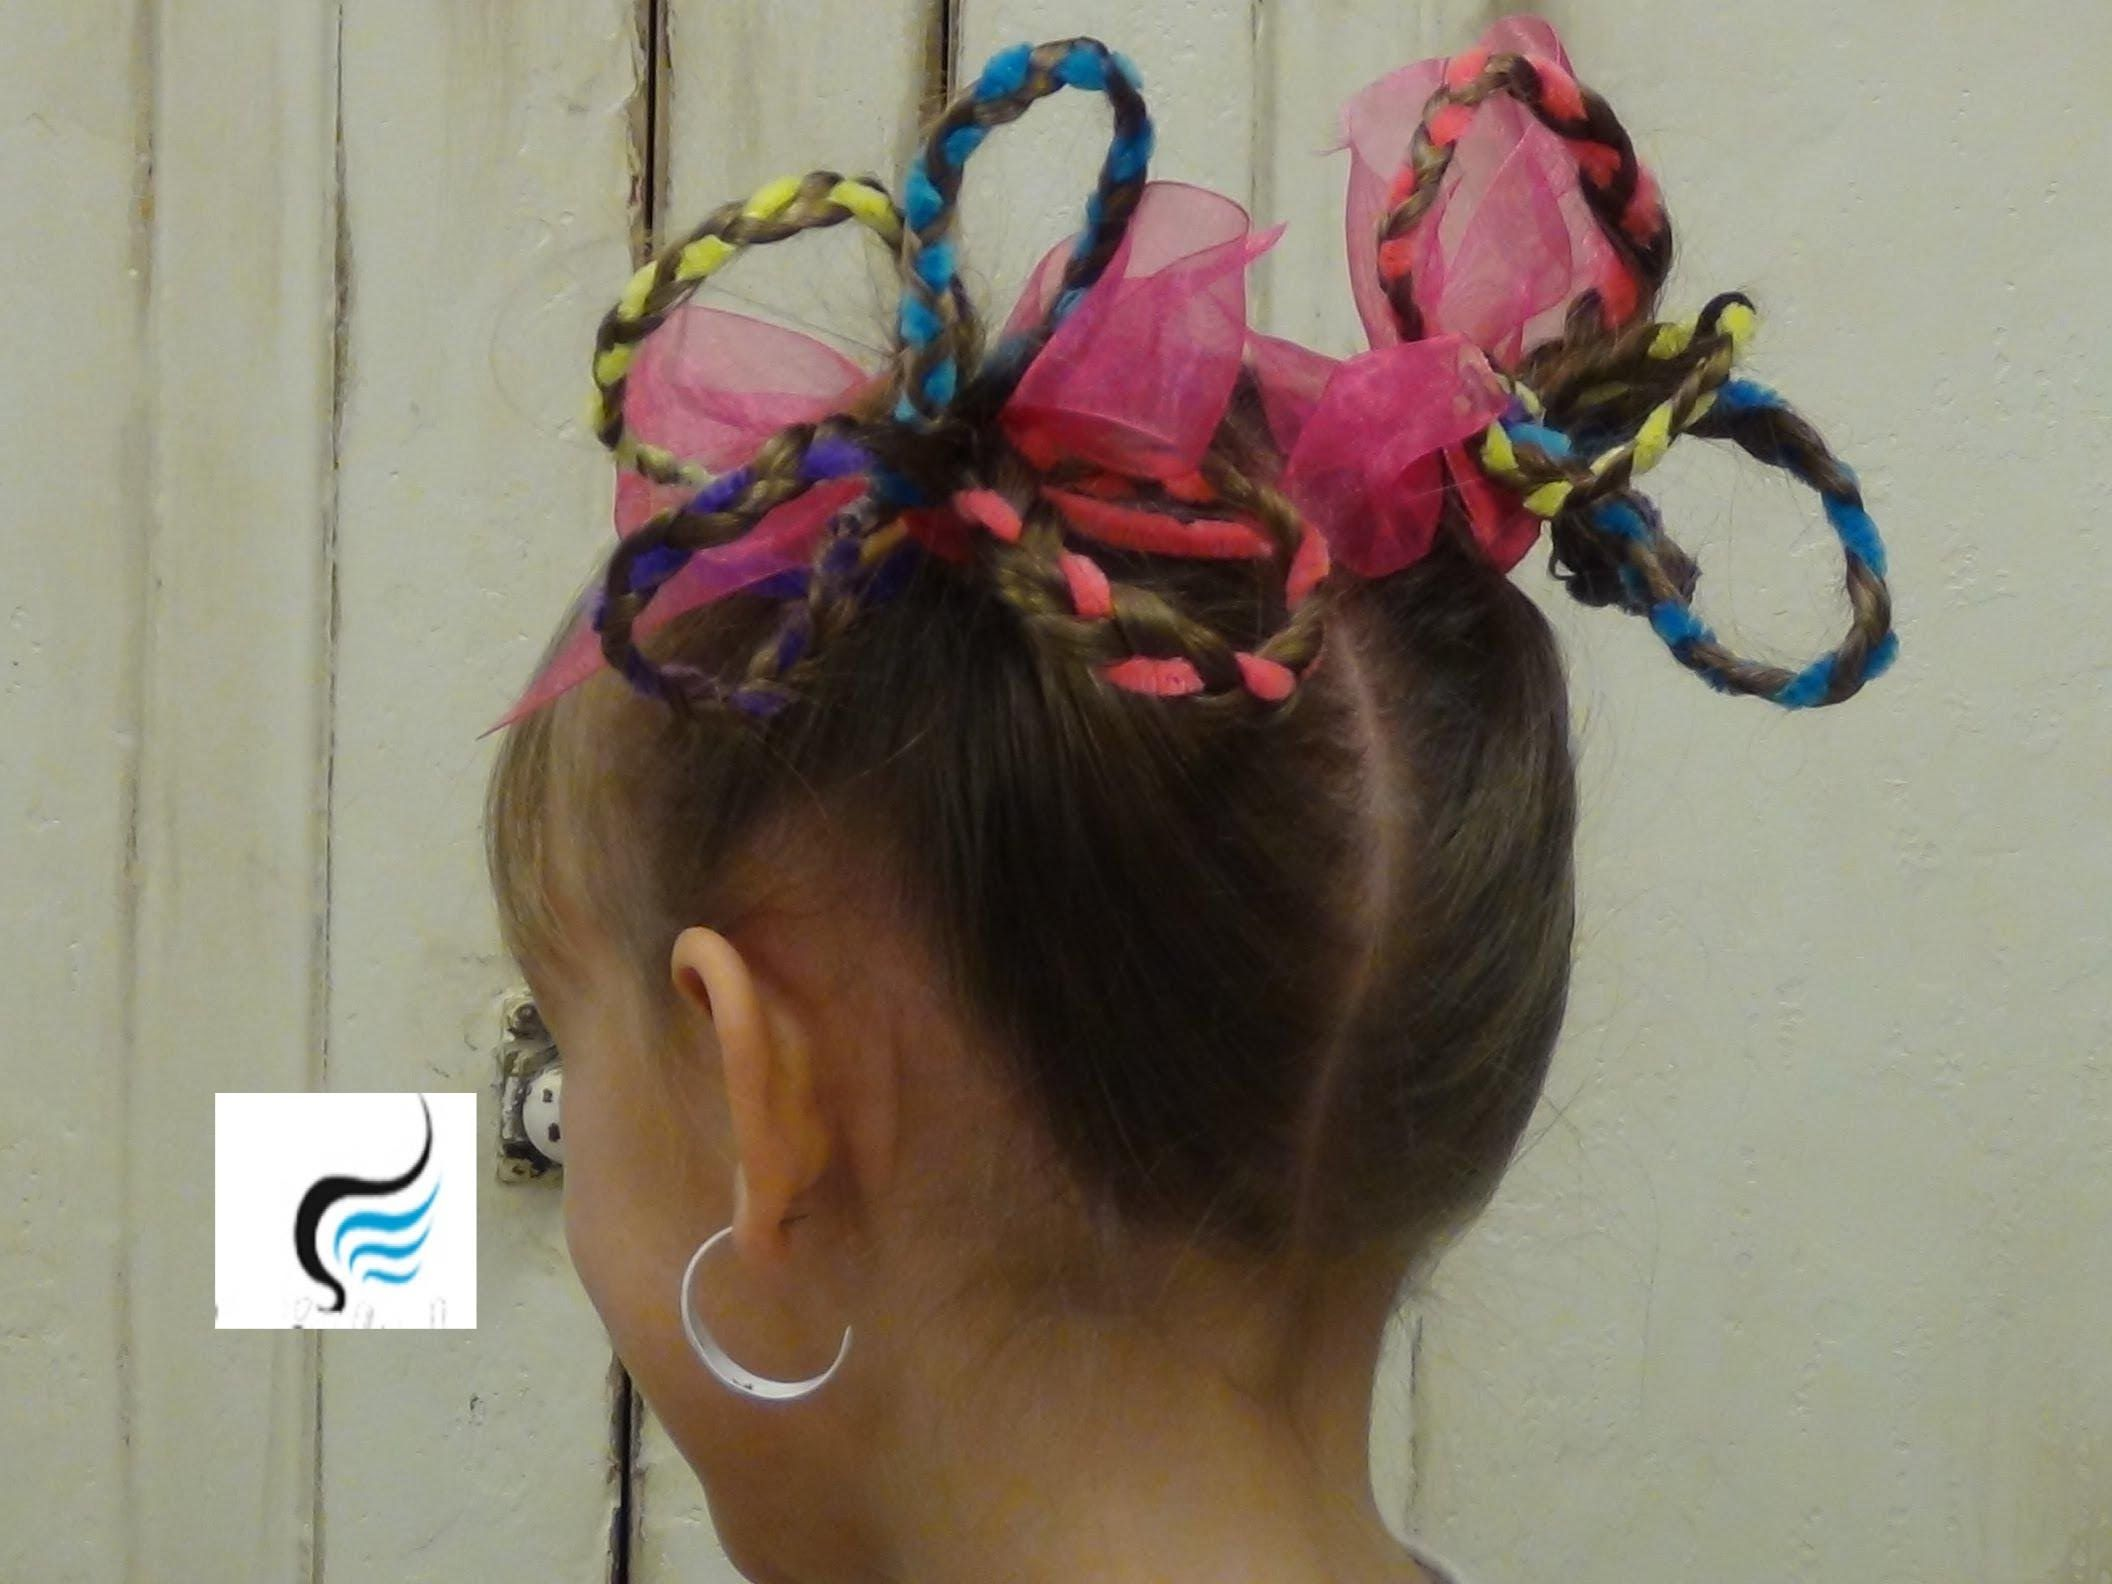 hair styles in a bun seuss hair hair pigtails for hairstyle hair 4006 | 453f4006c324c8d4039b750f65d3c319